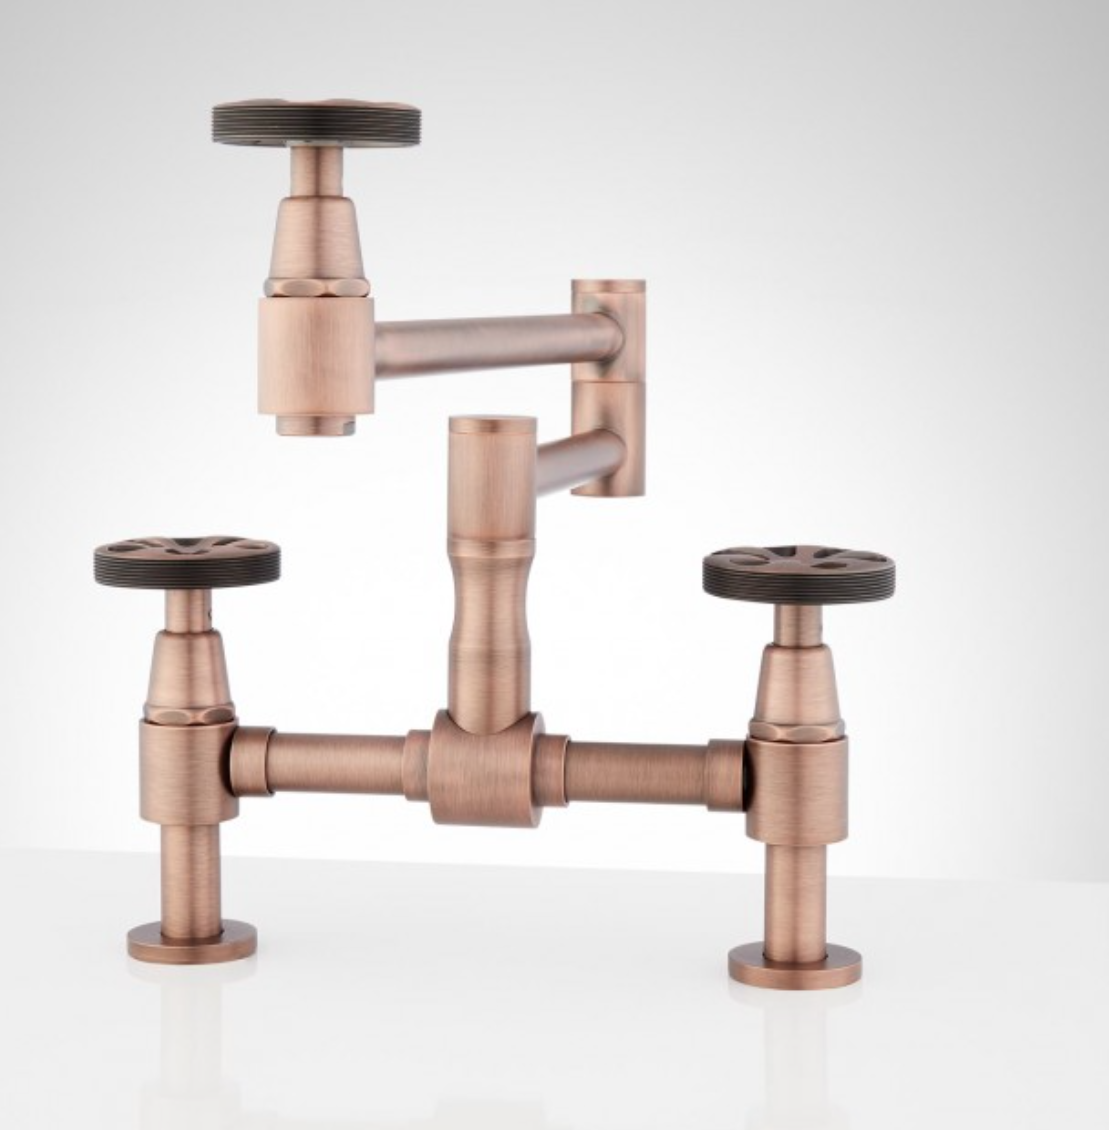 Steampunk Faucet Is This Too Industrial Steampunk Kitchen Steampunk Bathroom Unique Faucets [ 1130 x 1114 Pixel ]